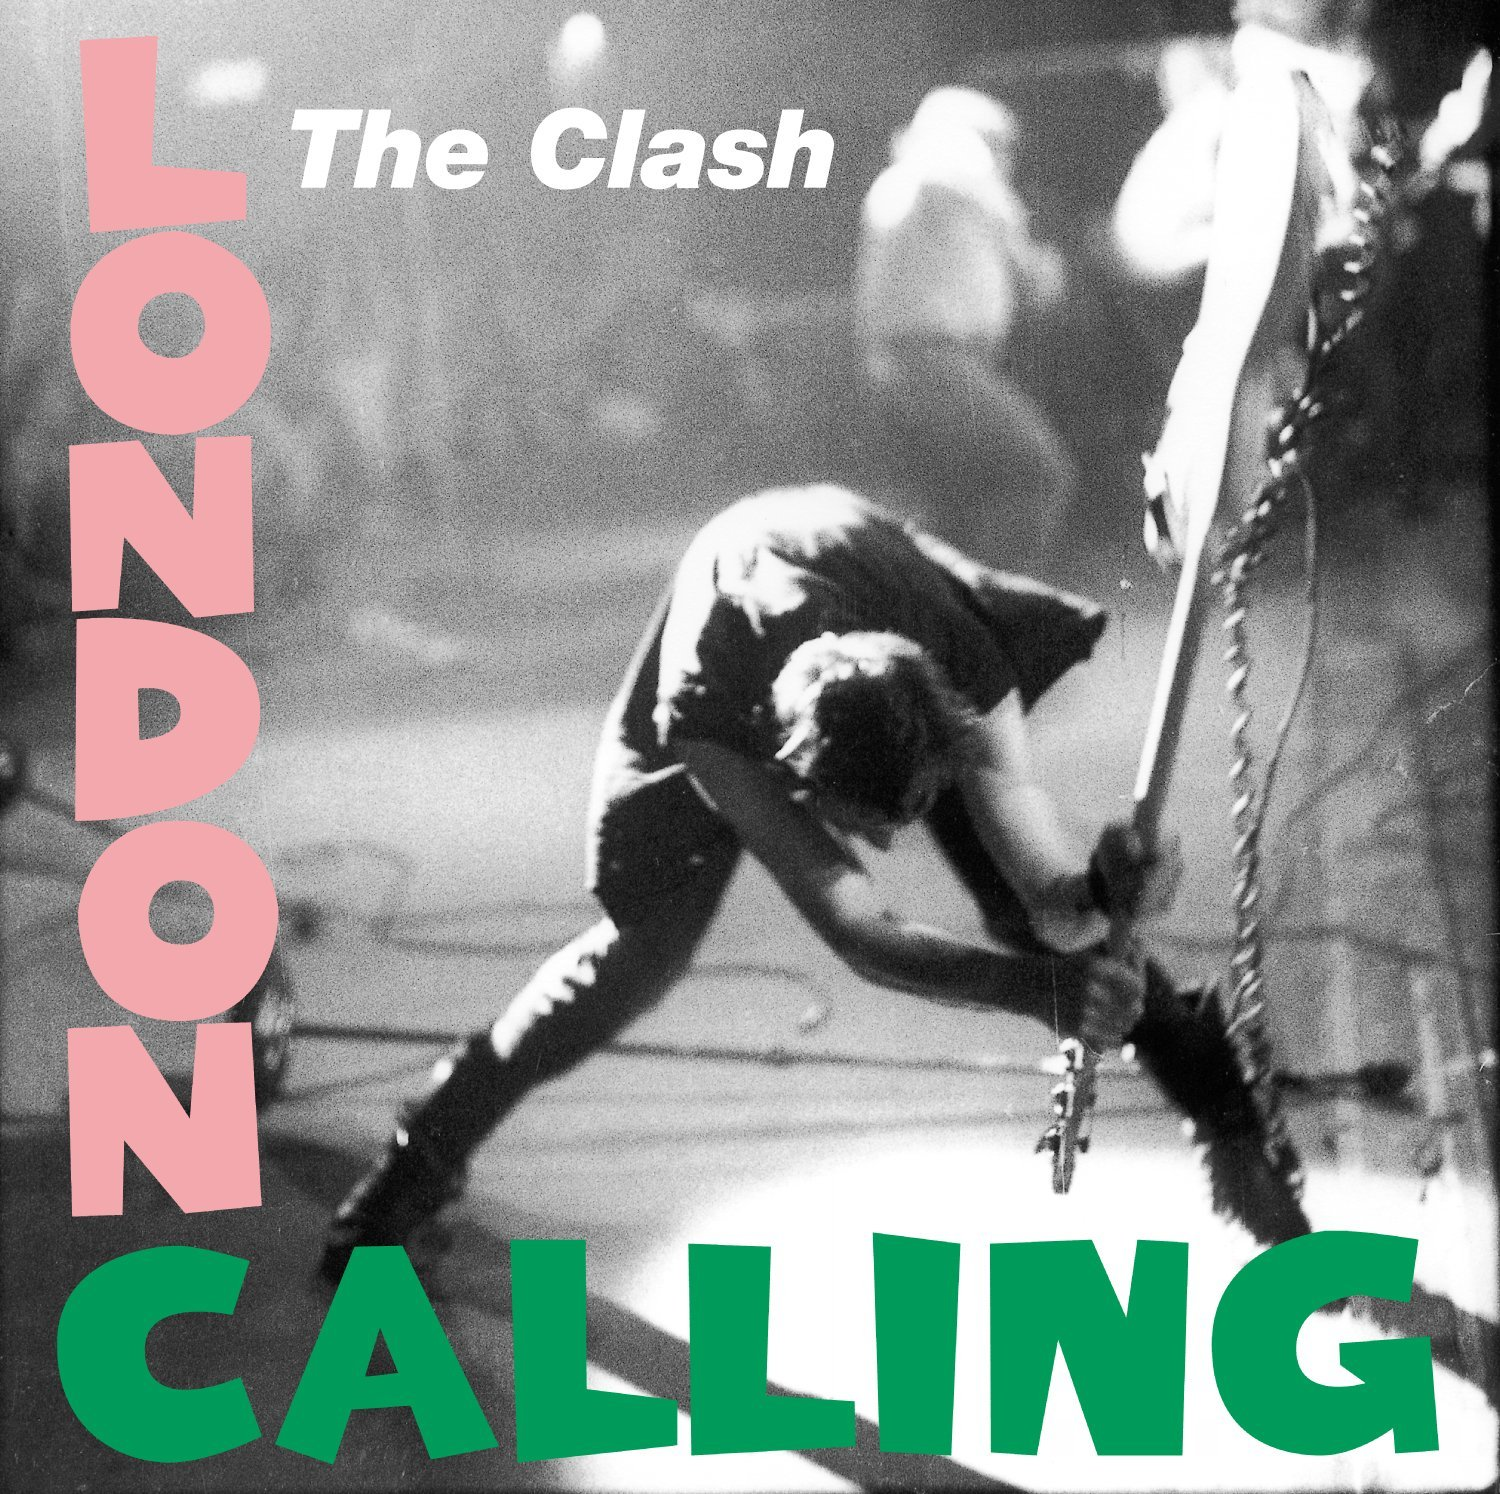 london calling Ranking: Every Album by The Clash from Worst to Best